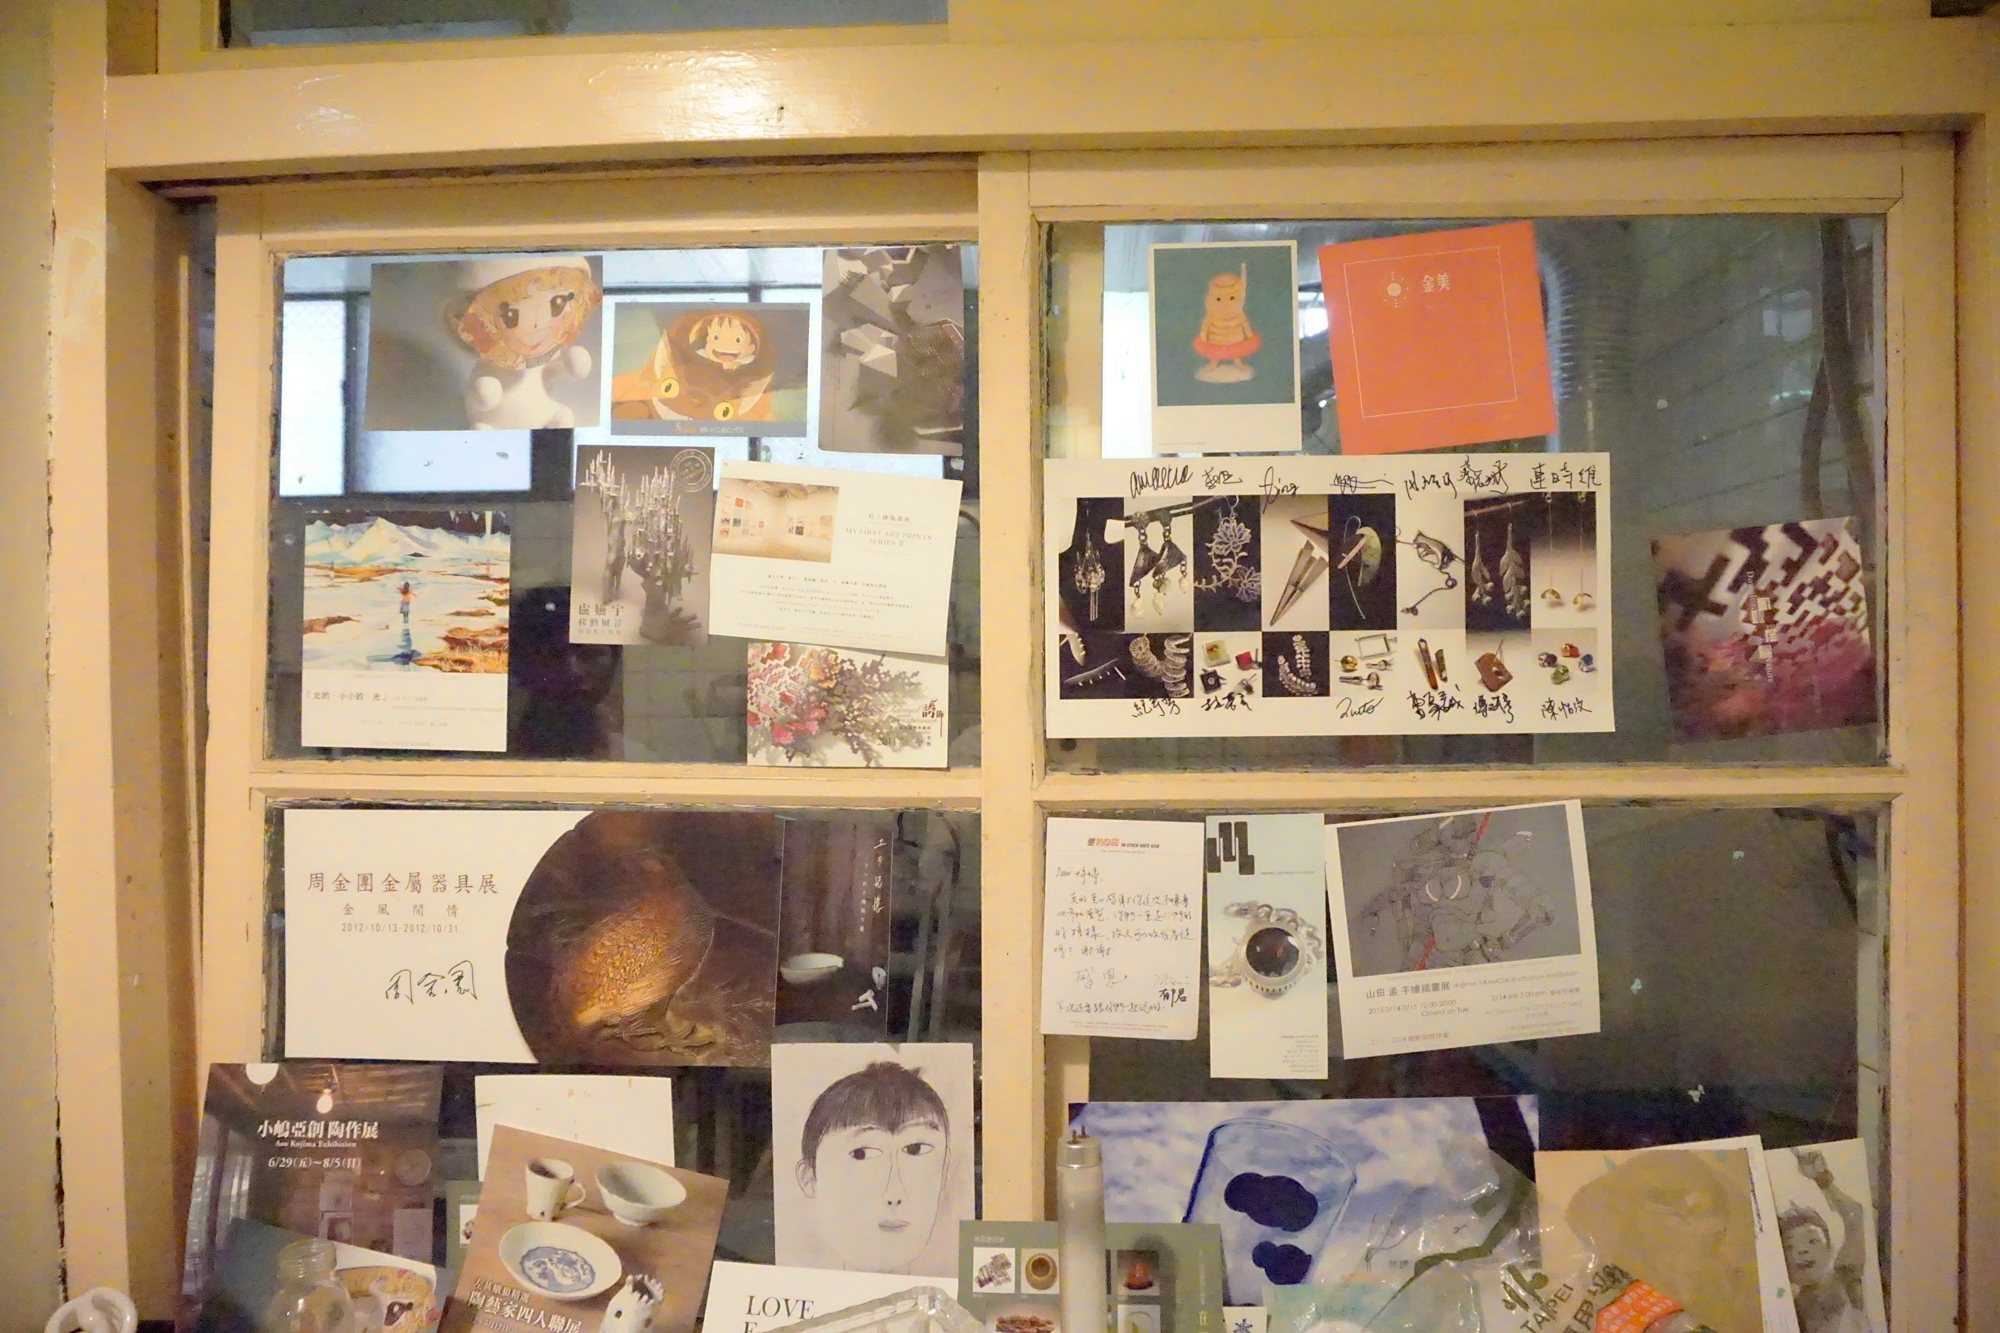 The thank you notes and mood board is a window of the studio